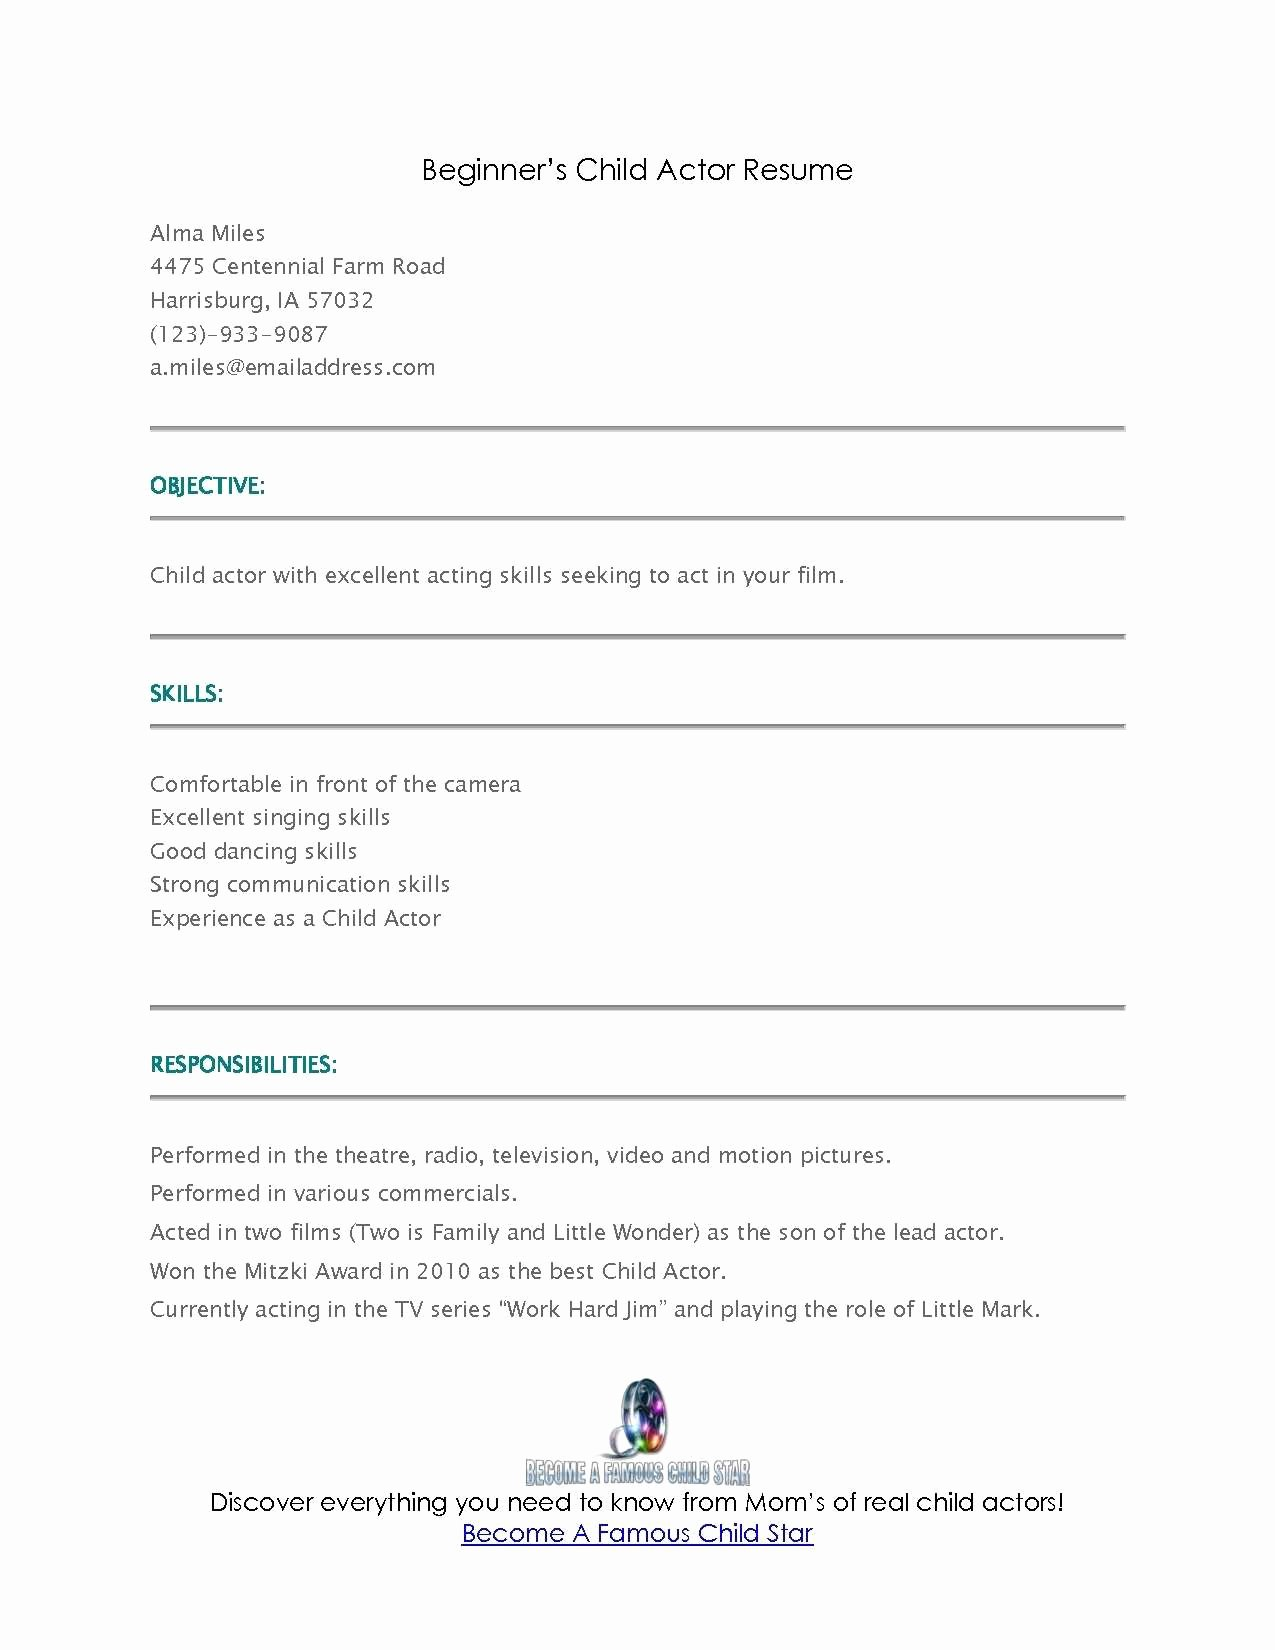 Beginner Acting Resume Template Awesome Acting Resume Sample for Beginners How to Make An Acting